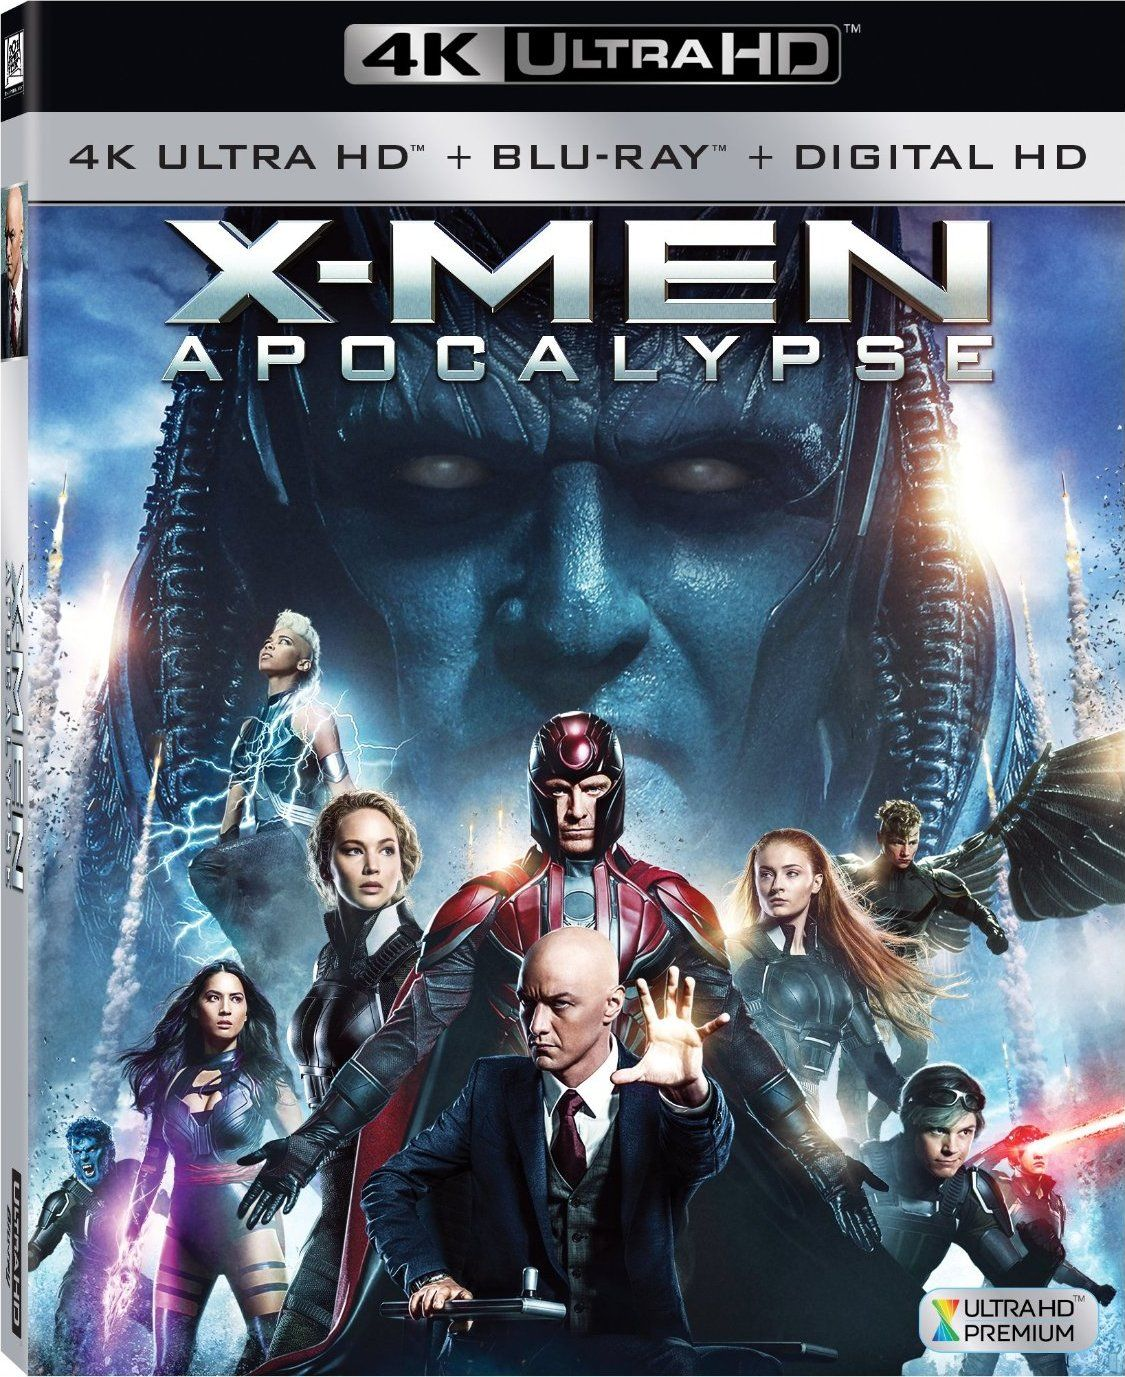 X Men Apocalypse 2016 4k Ultra Hd Blu Ray Apocalypse Movies X Men Apocalypse X Men